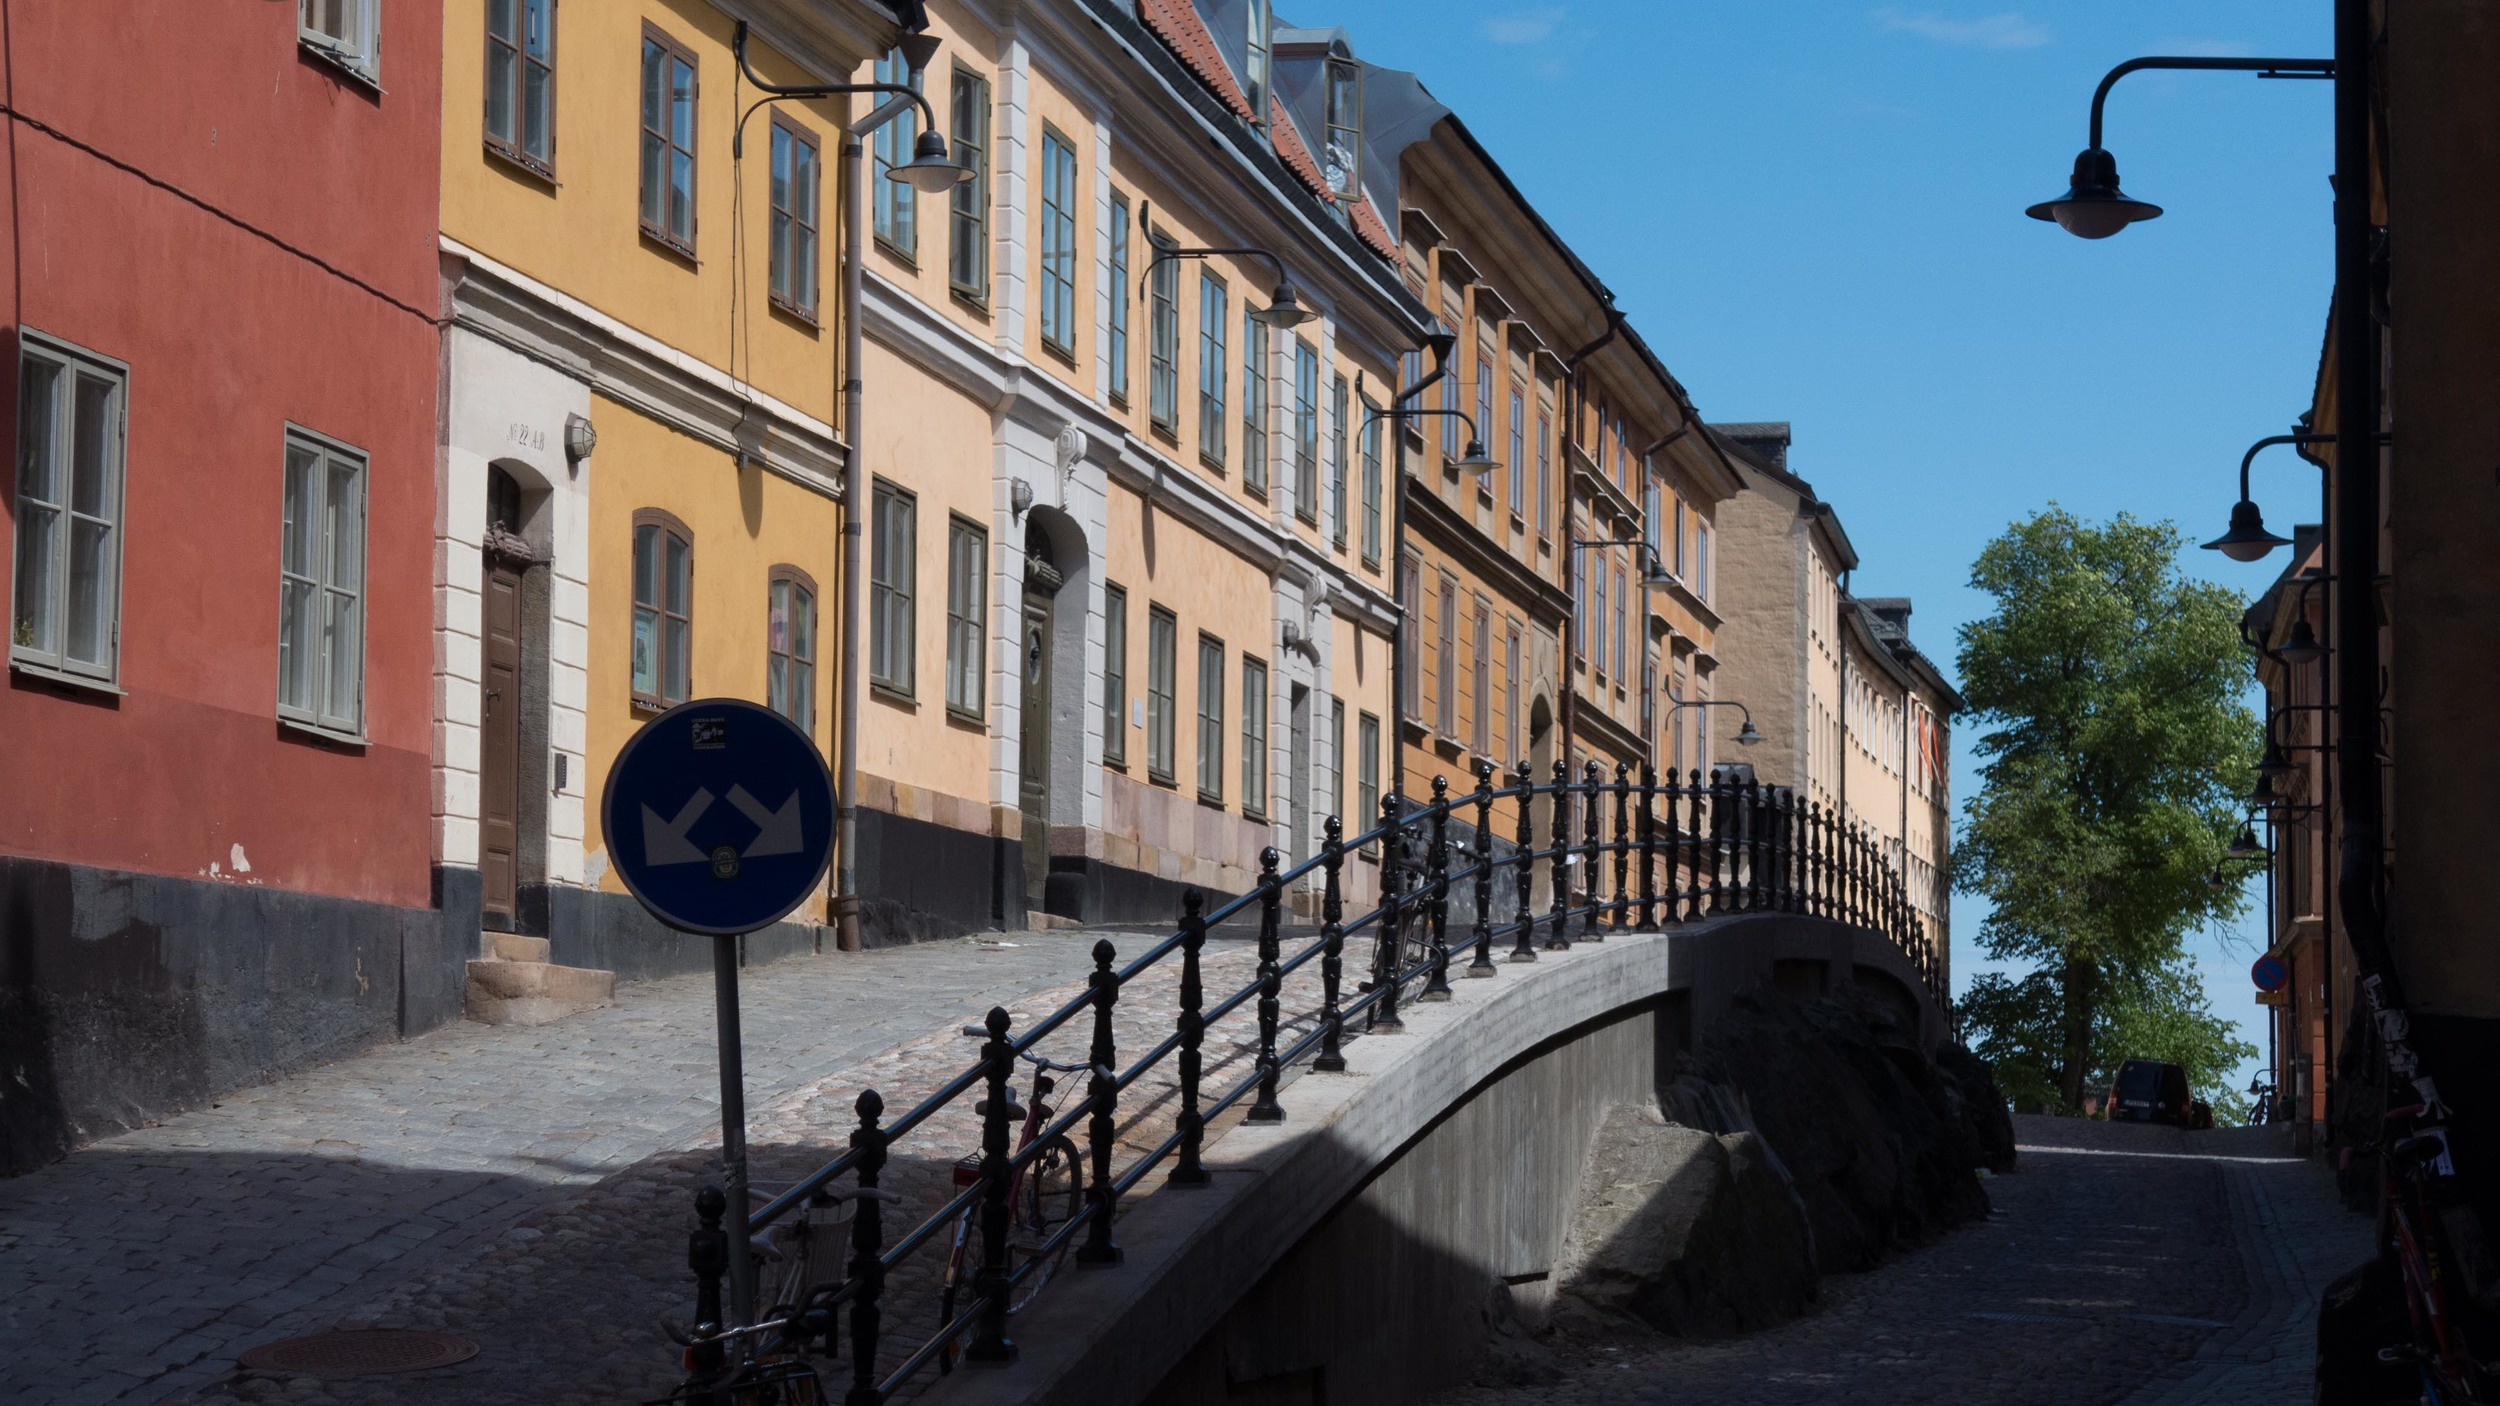 A row of houses in Södermalm, Stockholm